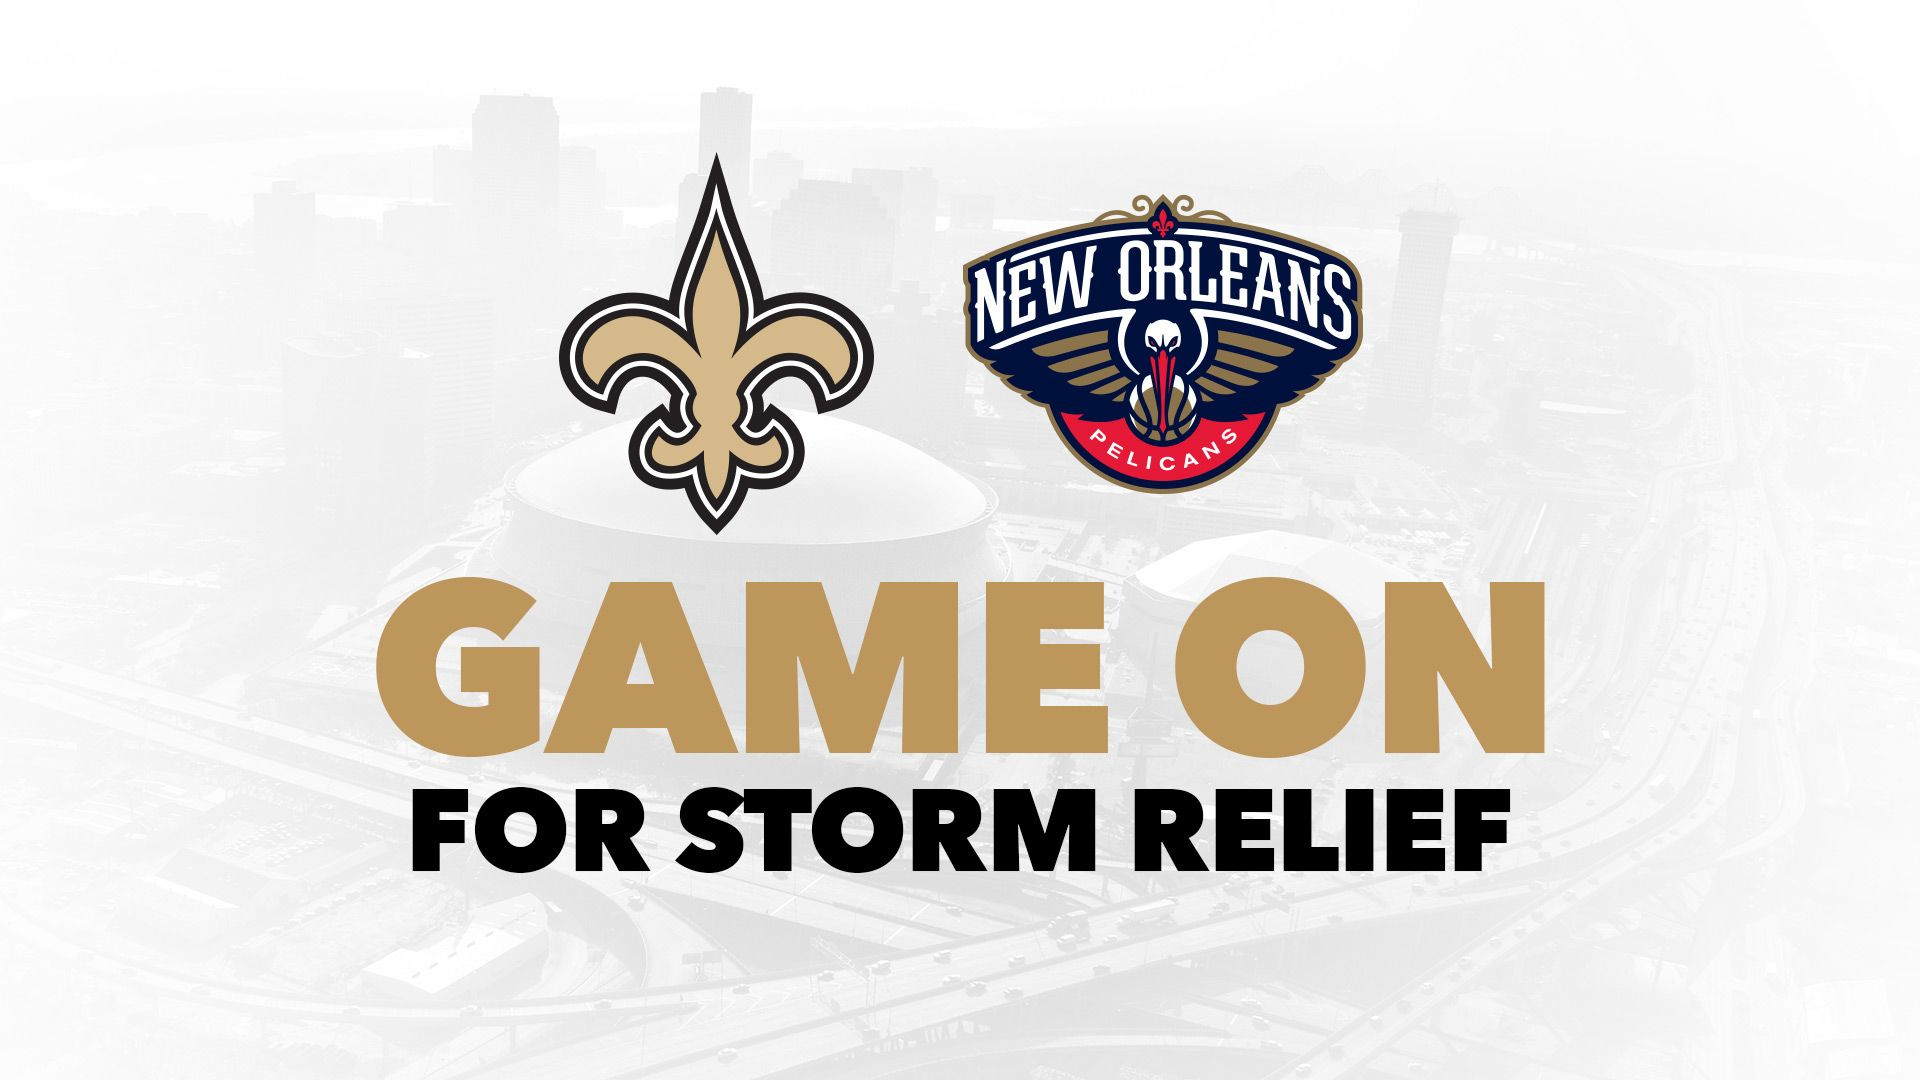 NEW ORLEANS SAINTS & PELICANS FUNDRAISER FOR HURRICANE RELIEF